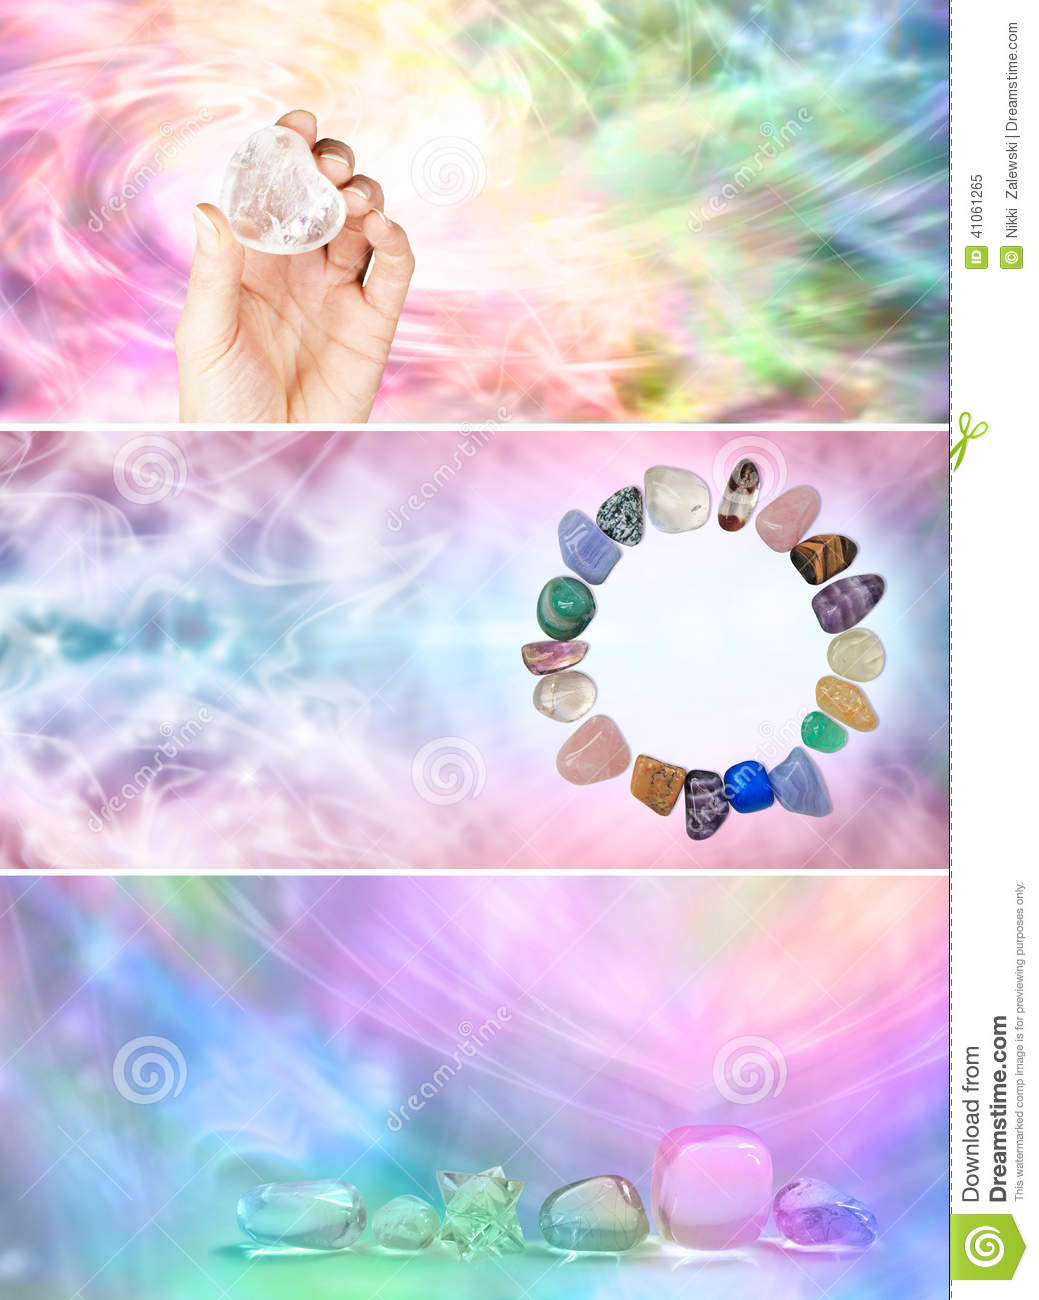 3 X Rainbow Crystal Healing Website Banners Stock Photo